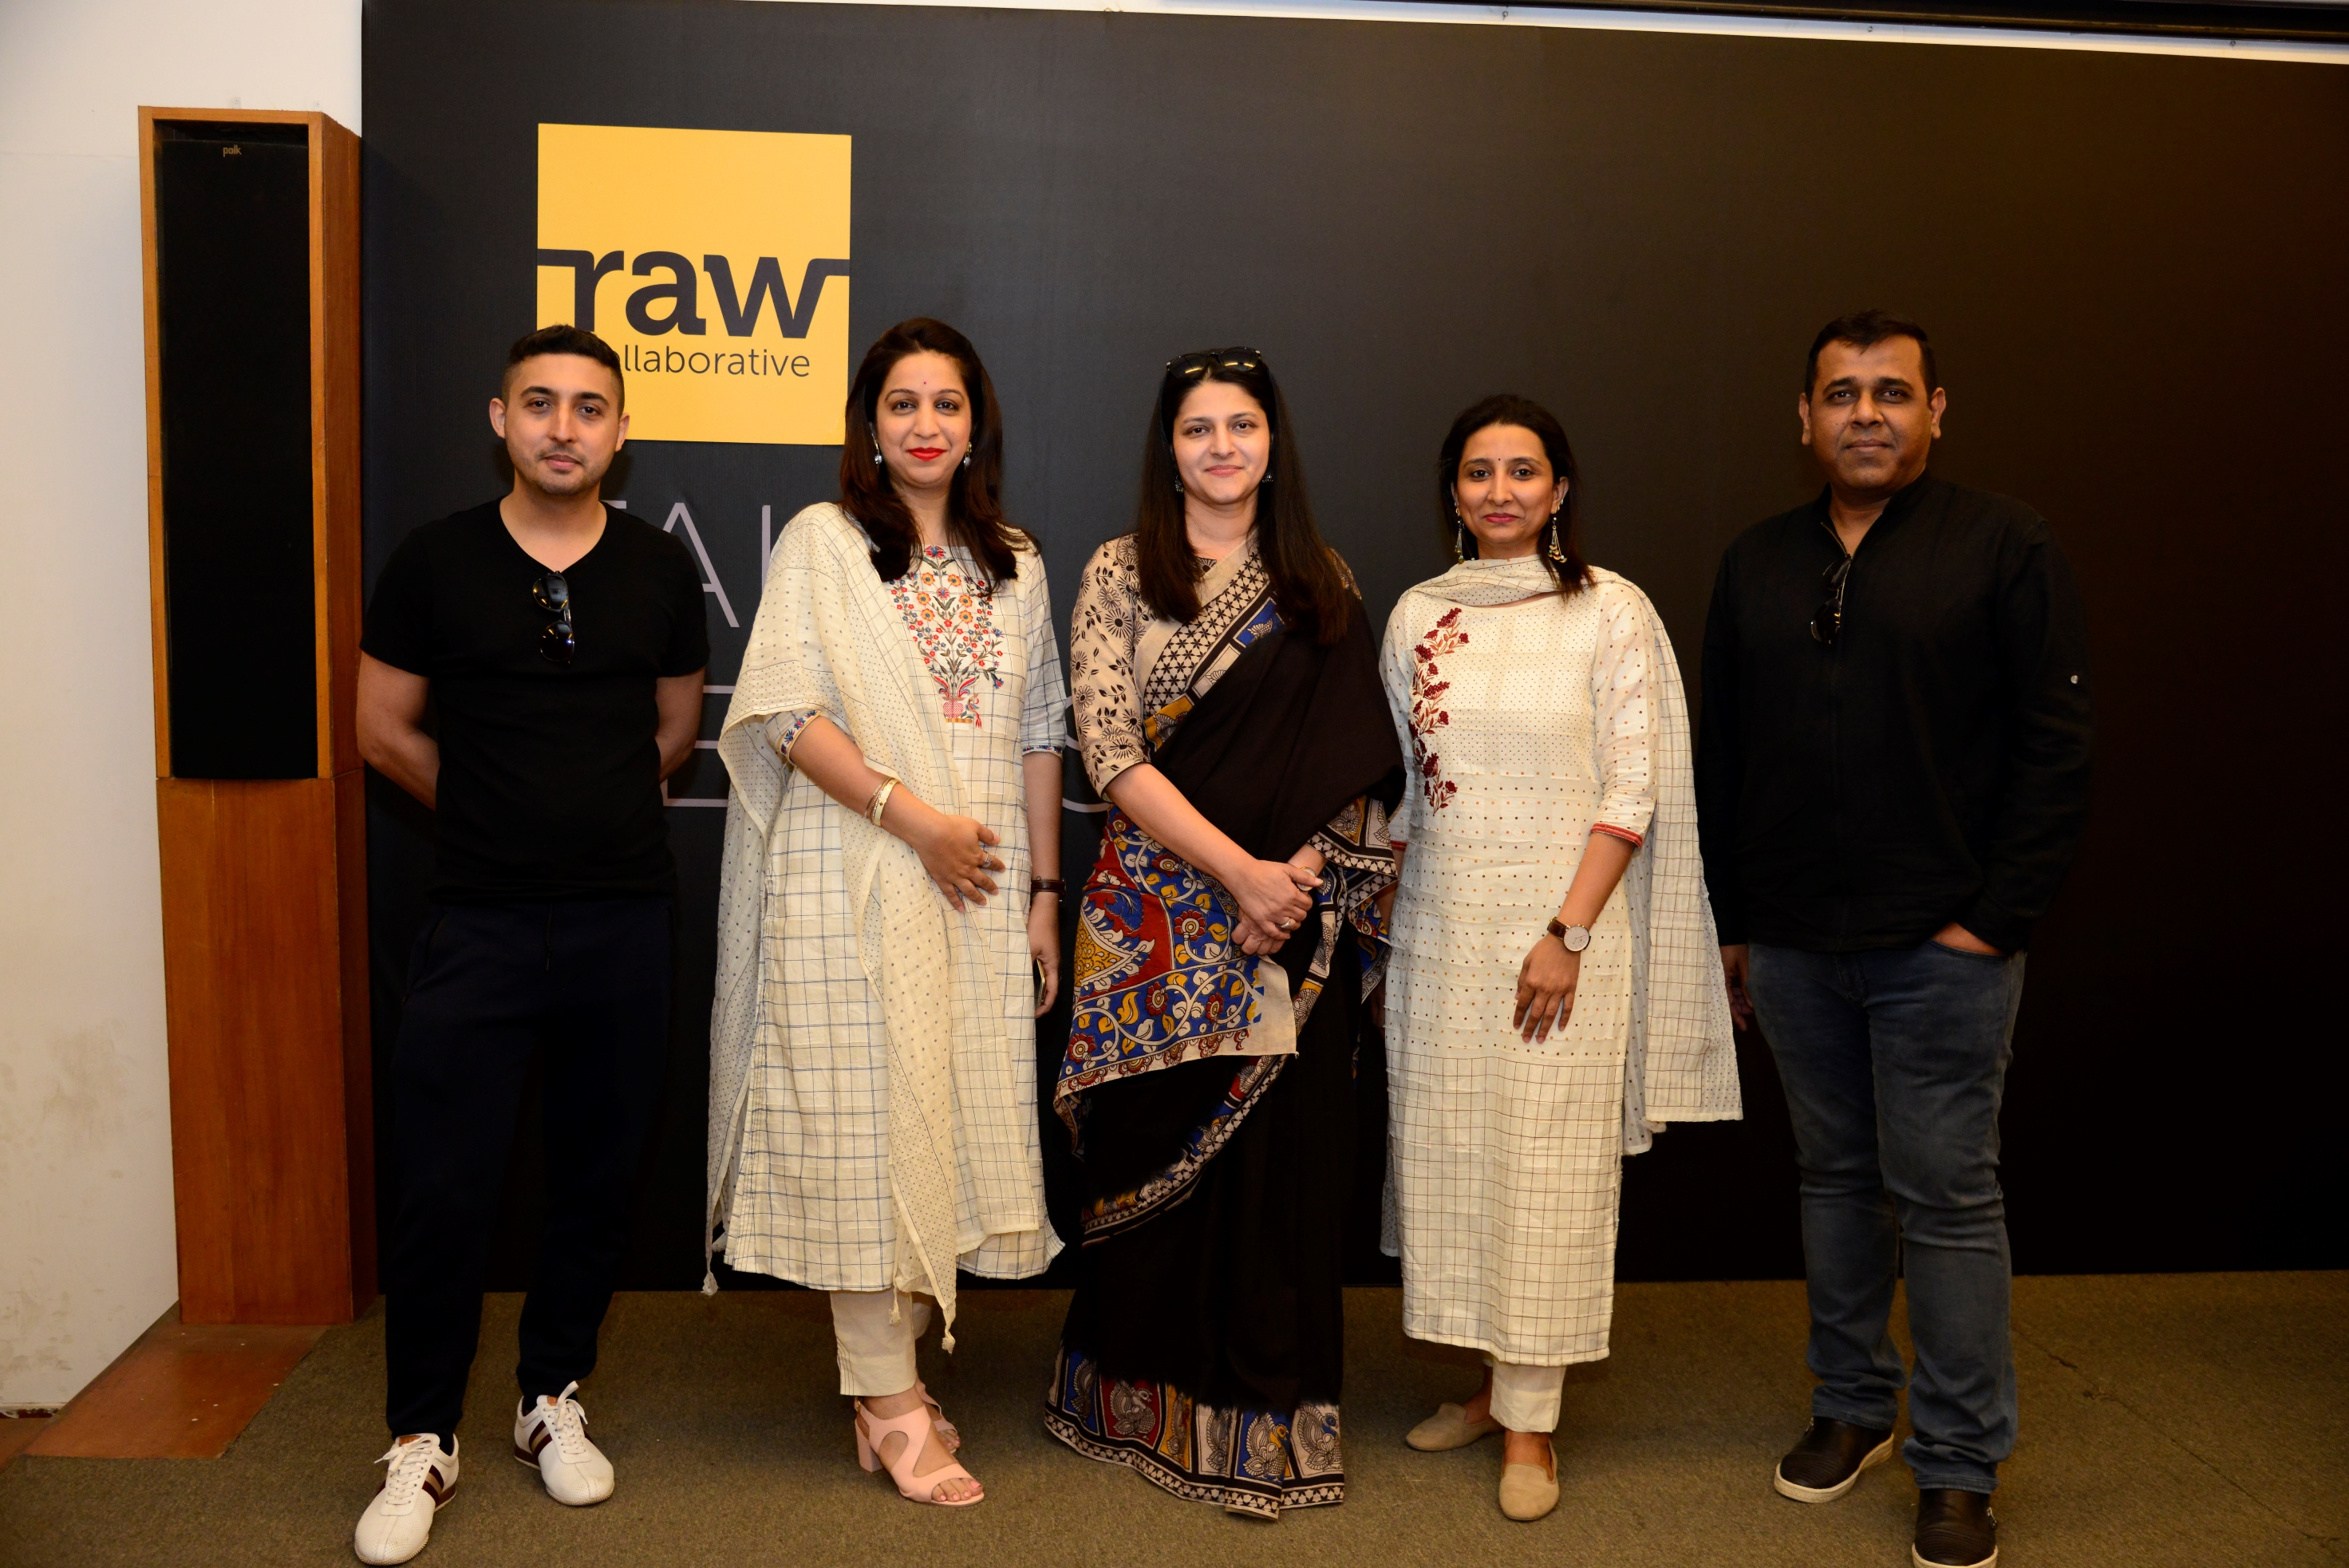 Ciceroni, Ahmedabad, local shopping guide, design exhibition, the raw collaborative, tanvi karia, priyadarshini rathore, rooshad Shroff, nimit karia, vishwa bhatt weir, design, home décor, interior design, brands to look for in home décor